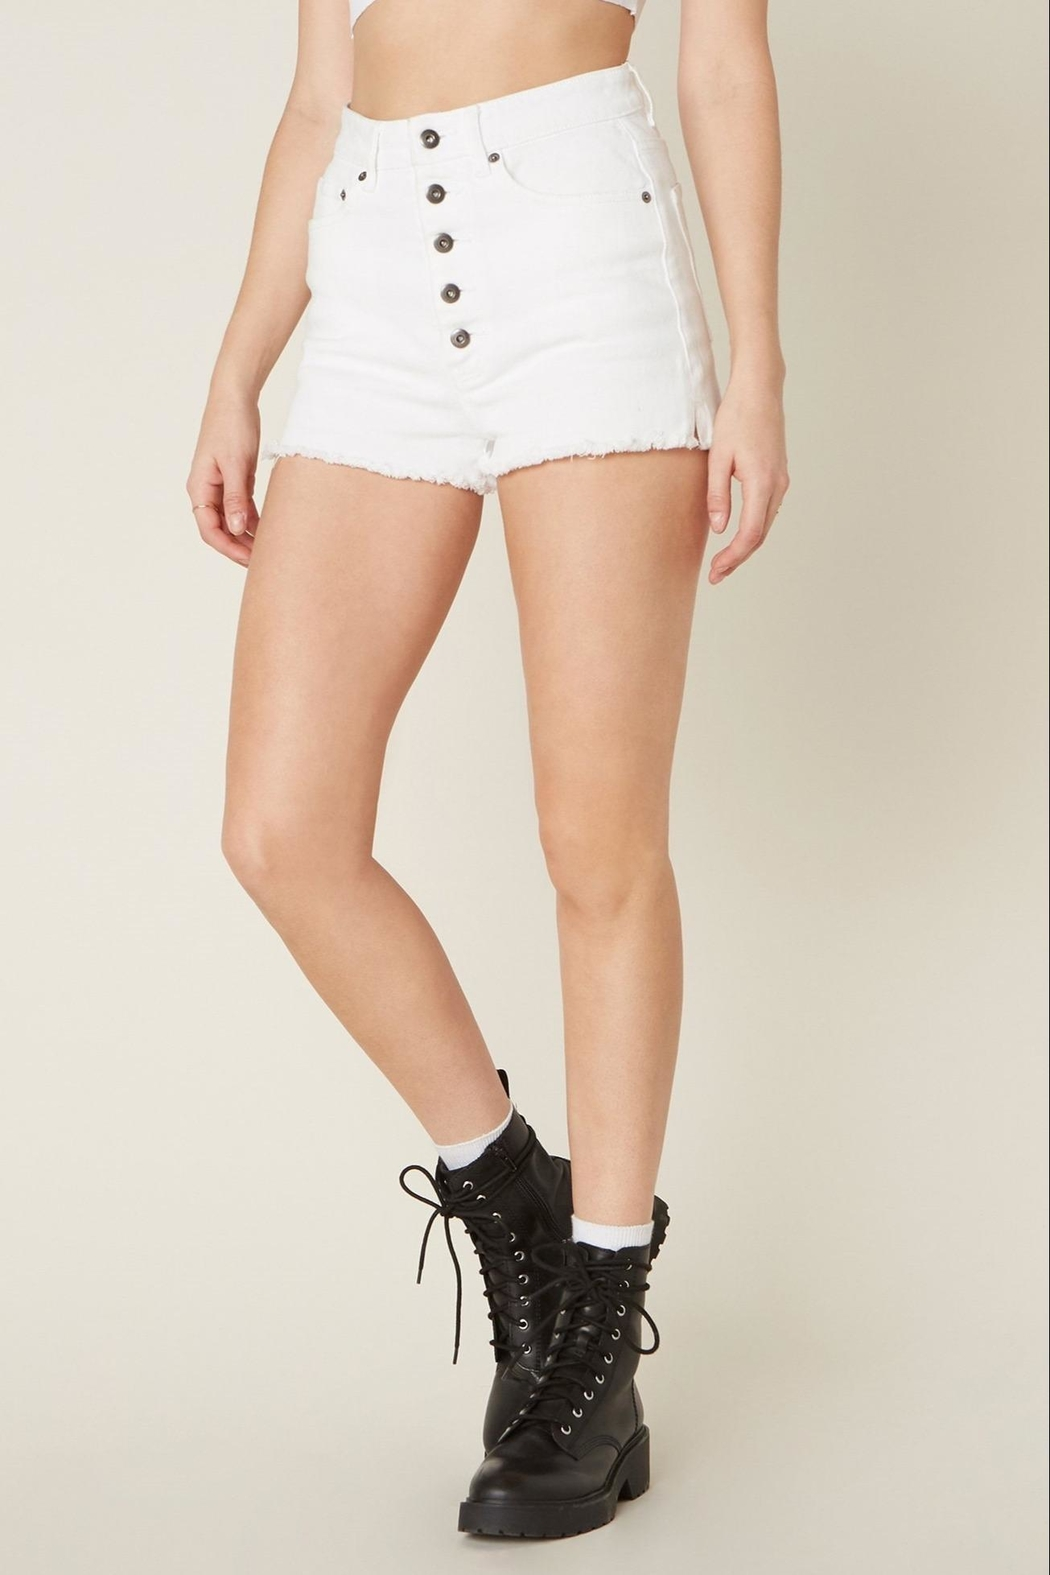 Jack by BB Dakota Down-To-Business Denim Short - Front Full Image